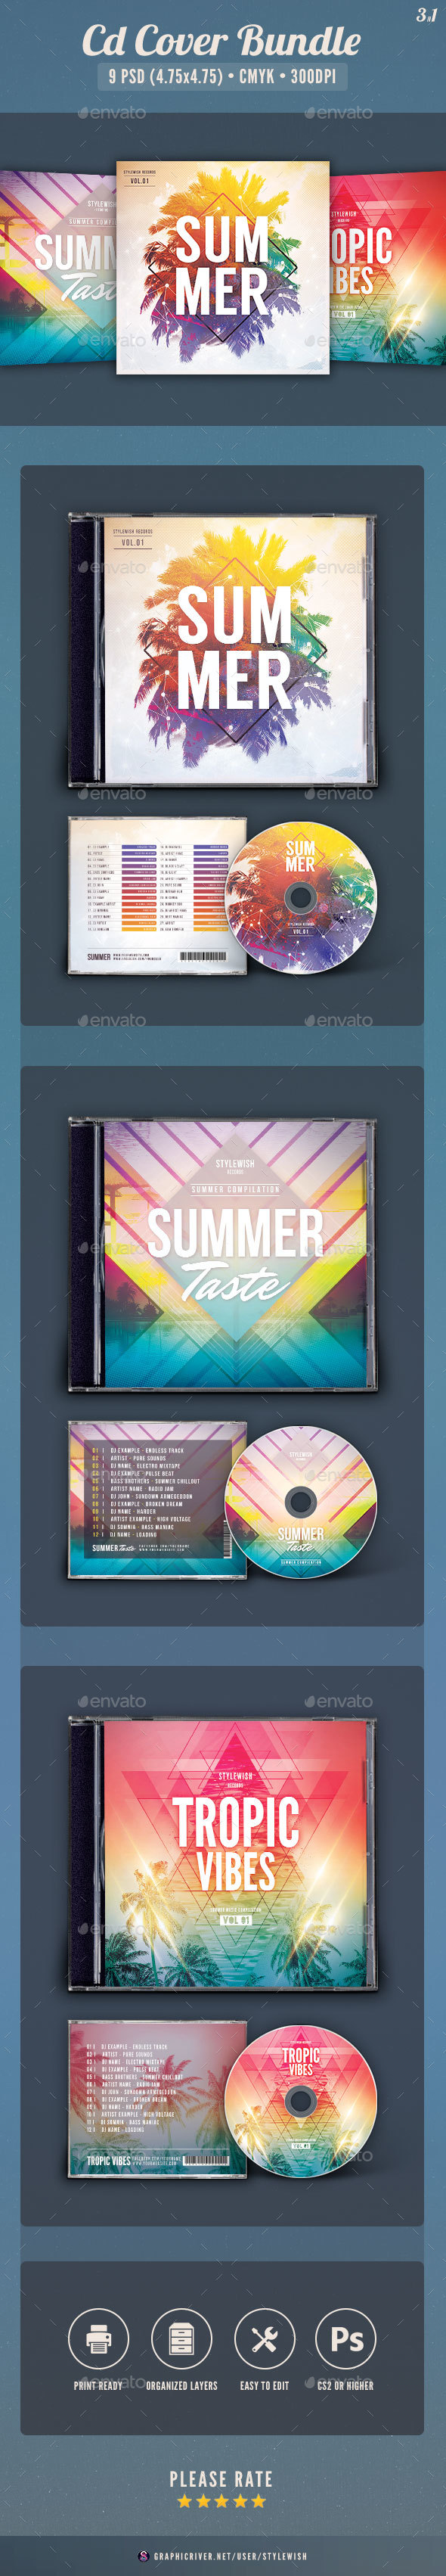 Summer CD Cover Bundle Vol.04 - CD & DVD Artwork Print Templates